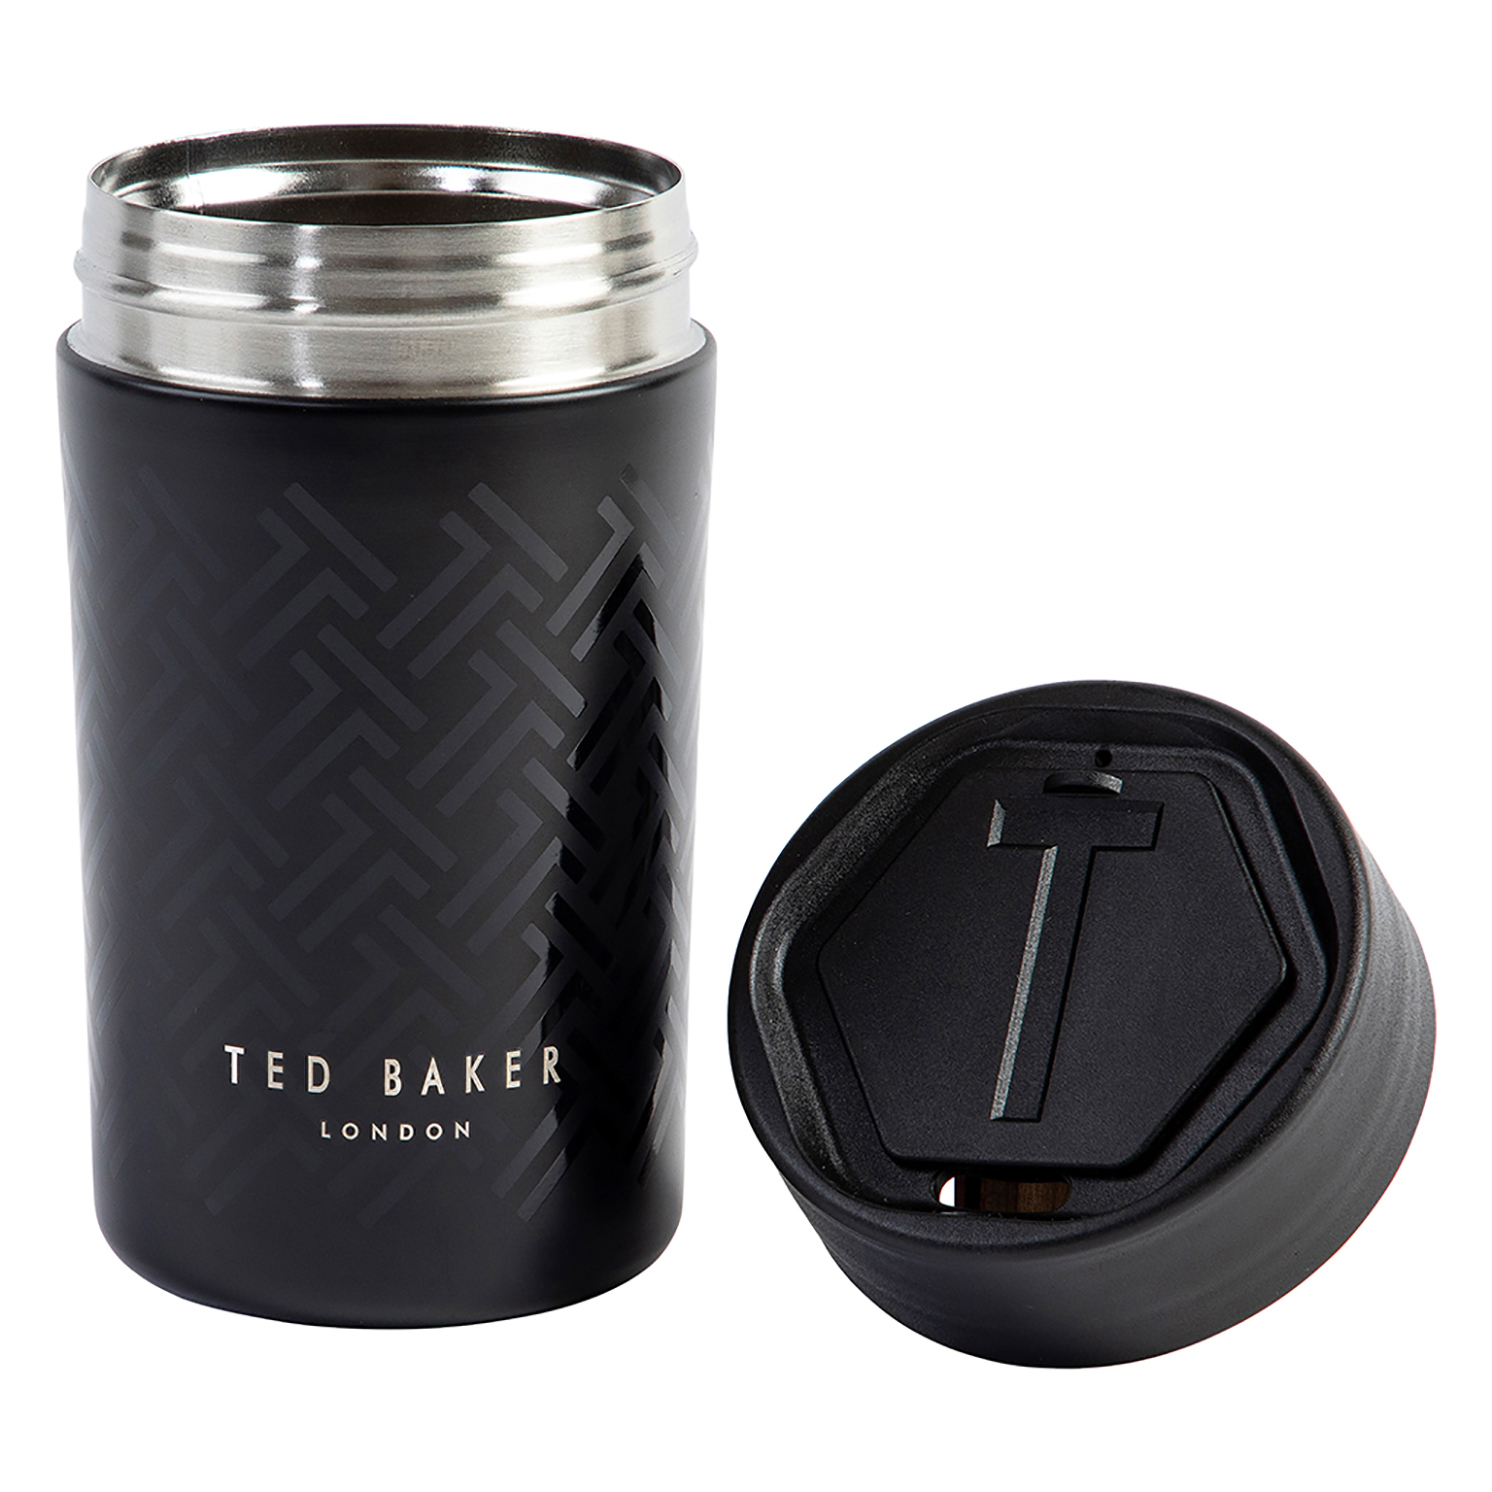 Ted Baker – Black Stainless Steel Insulated Travel Cup/Mug